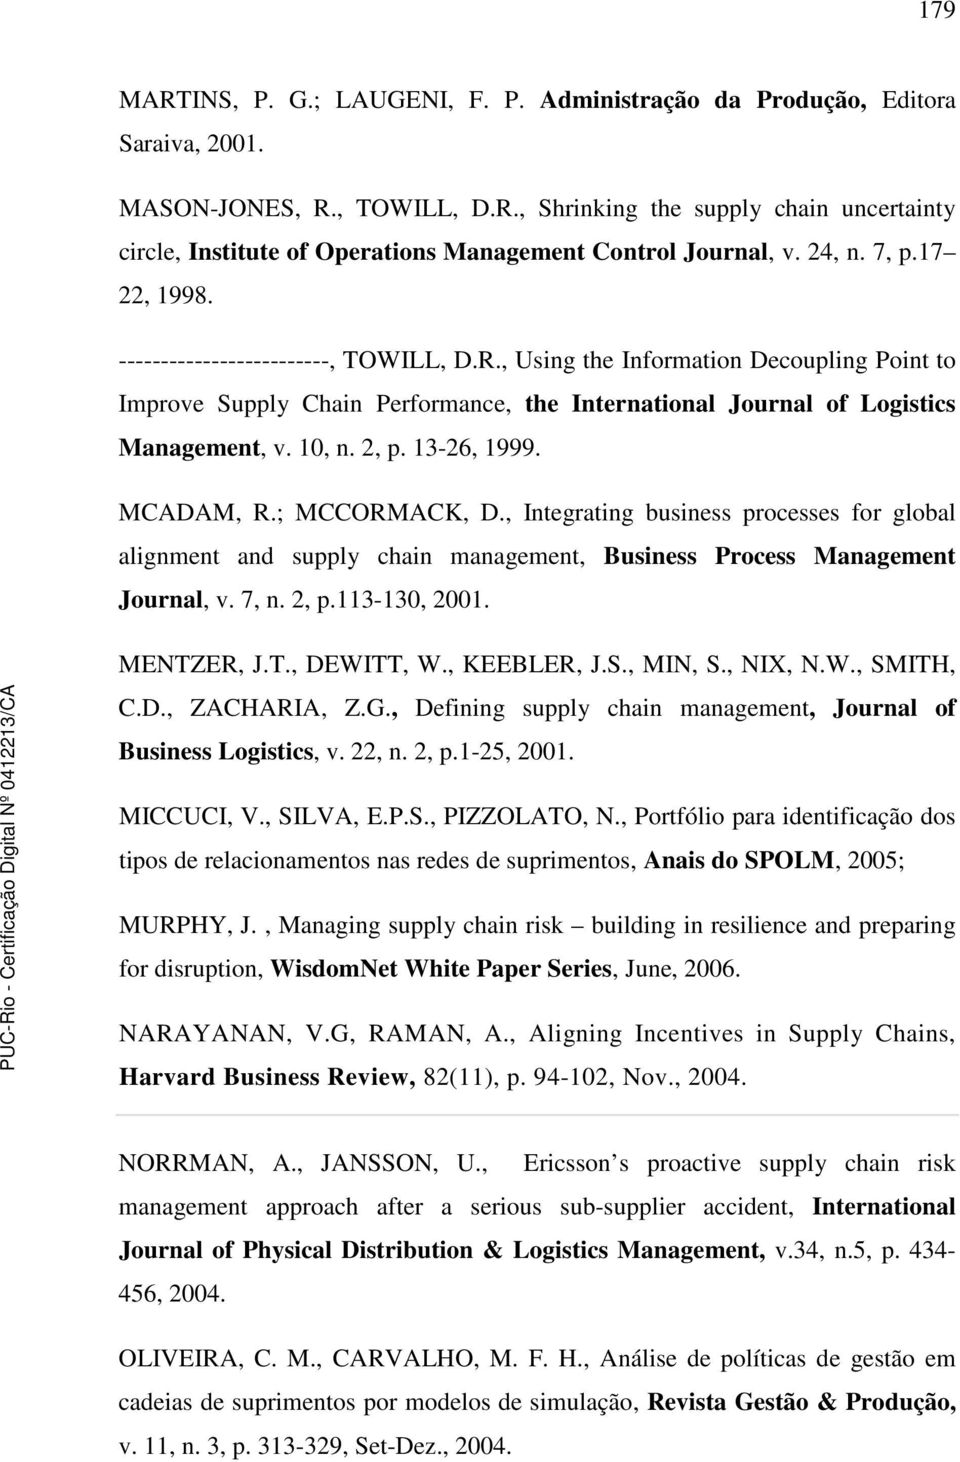 10, n. 2, p. 13-26, 1999. MCADAM, R.; MCCORMACK, D., Integrating business processes for global alignment and supply chain management, Business Process Management Journal, v. 7, n. 2, p.113-130, 2001.